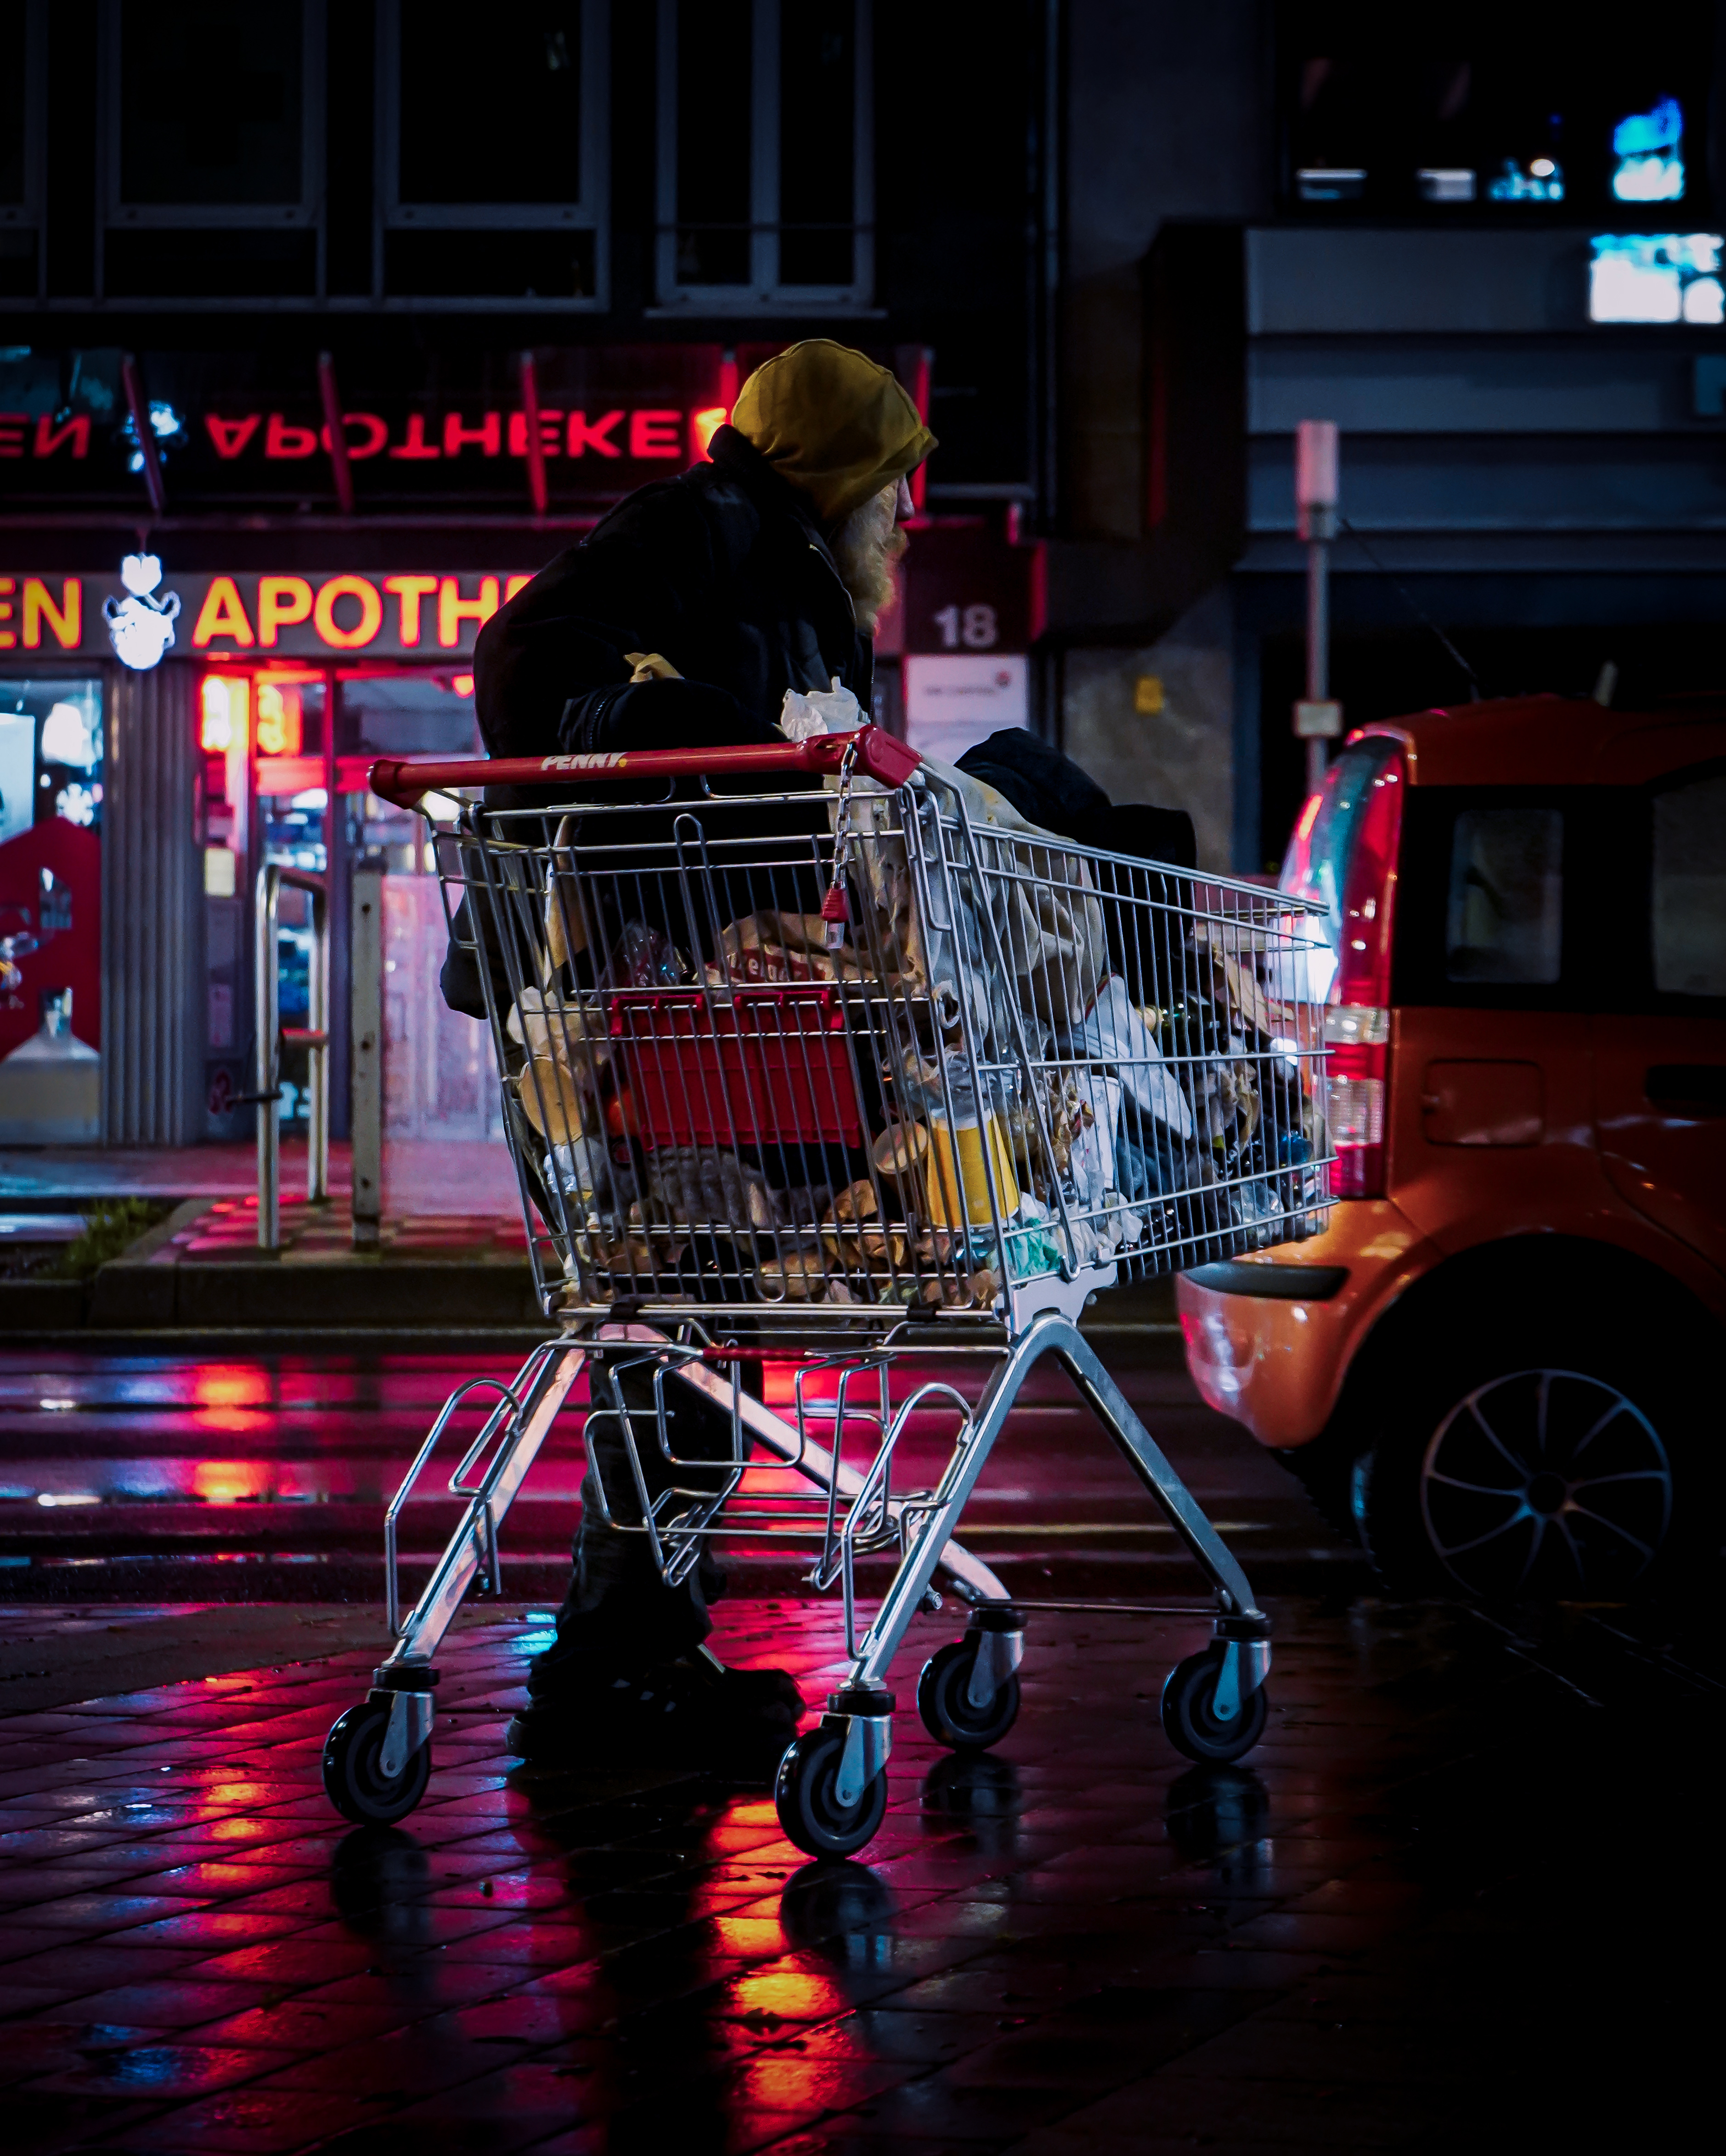 Shopping Carts Pictures Download Free Images On Unsplash